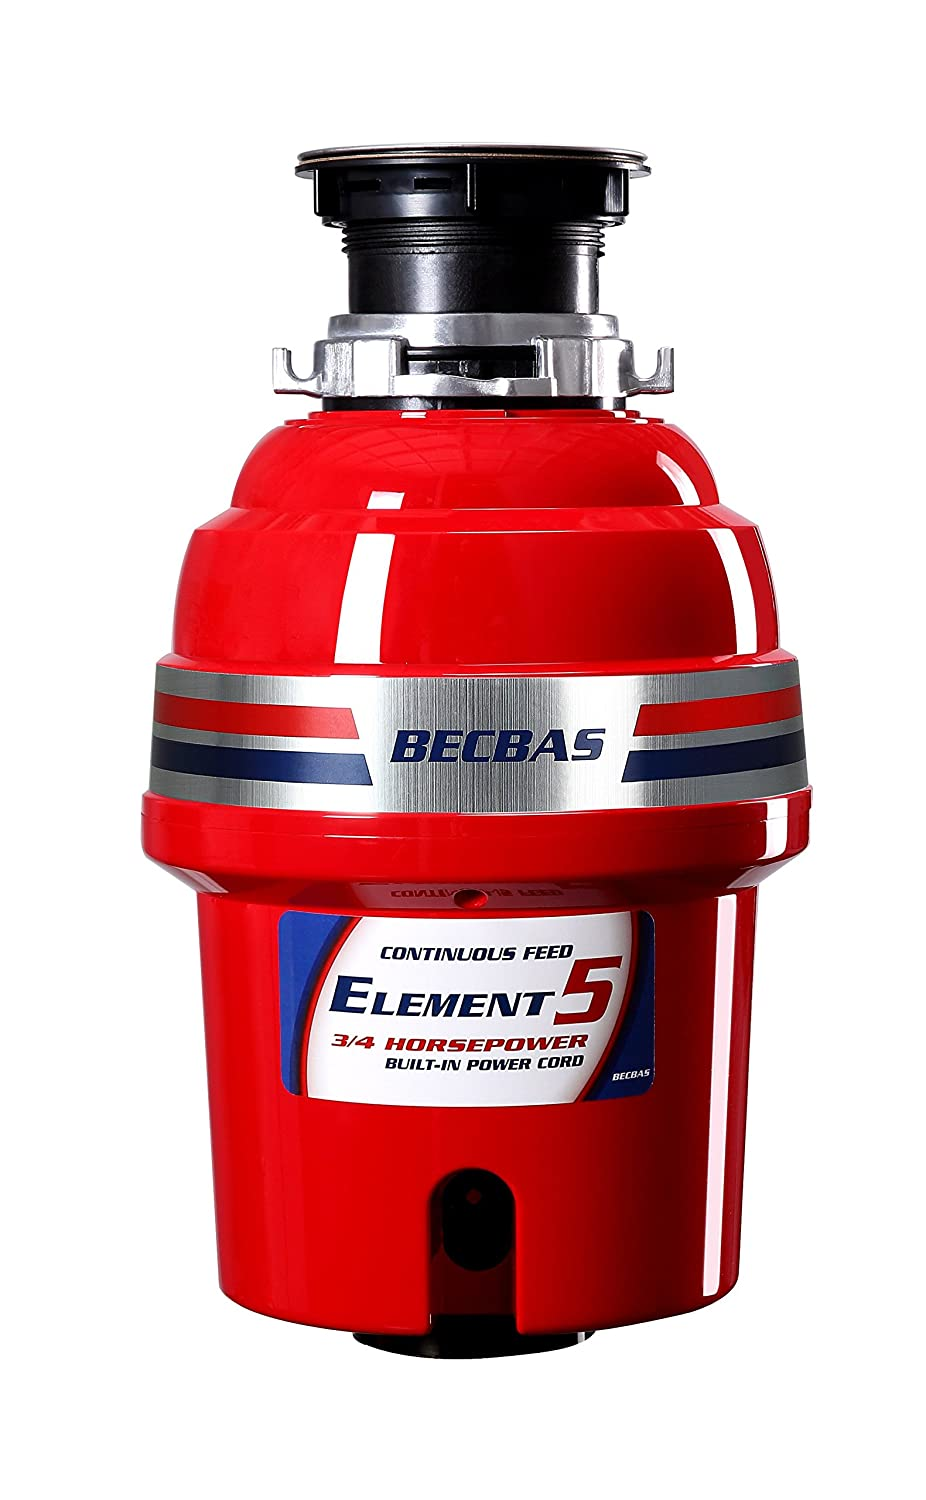 BECBAS ELEMENT 5 Garbage Disposal,3/4HP 2600 RPM Household Food Waste Disposer,With Power Cord